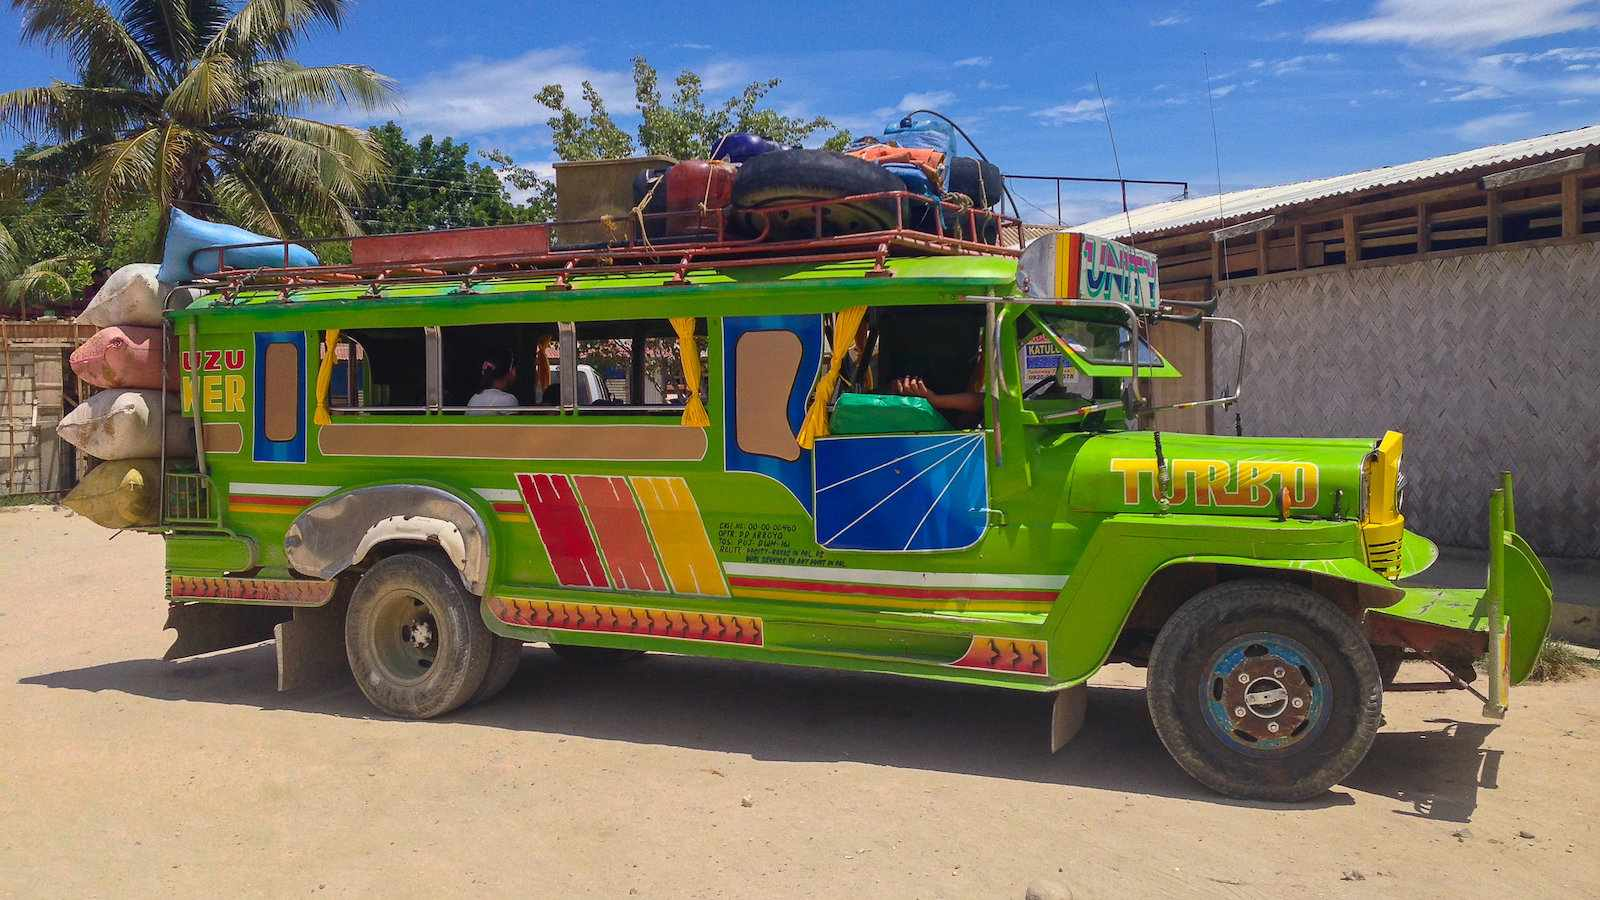 We love using the colorful and kitsch jeepneys to get around in the Philippines